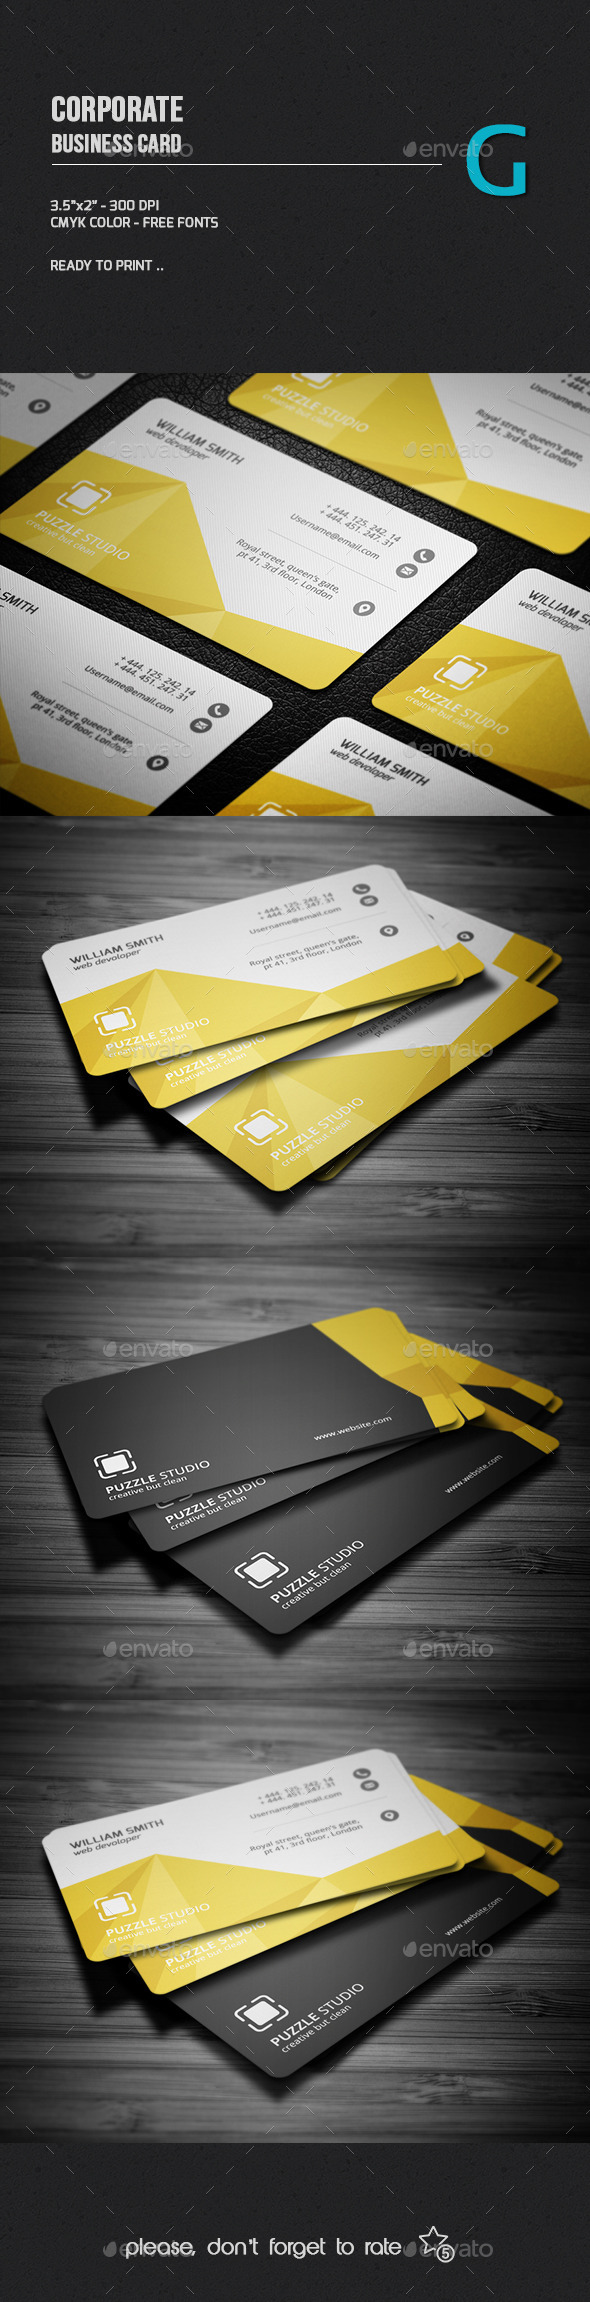 GraphicRiver Corporate Business Card 10084824